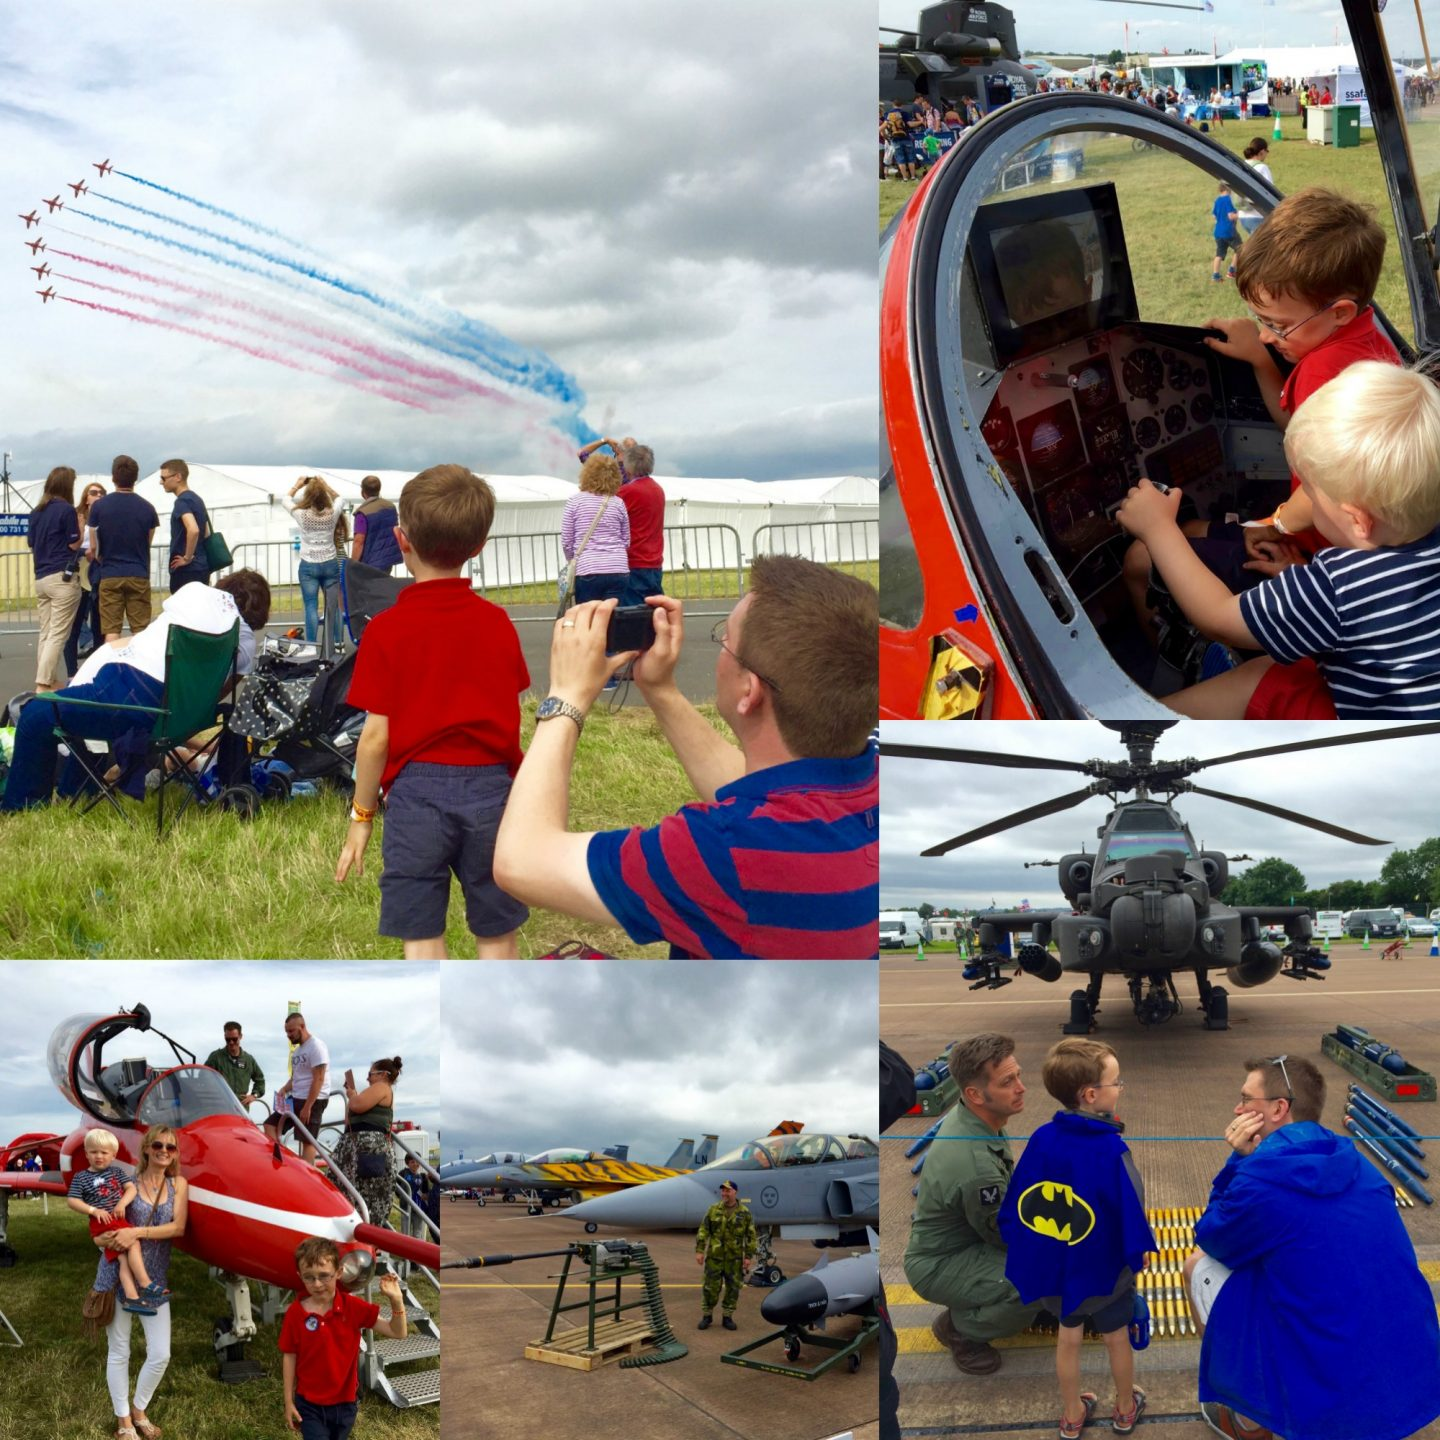 The Royal International Air Tattoo in photos and top tips